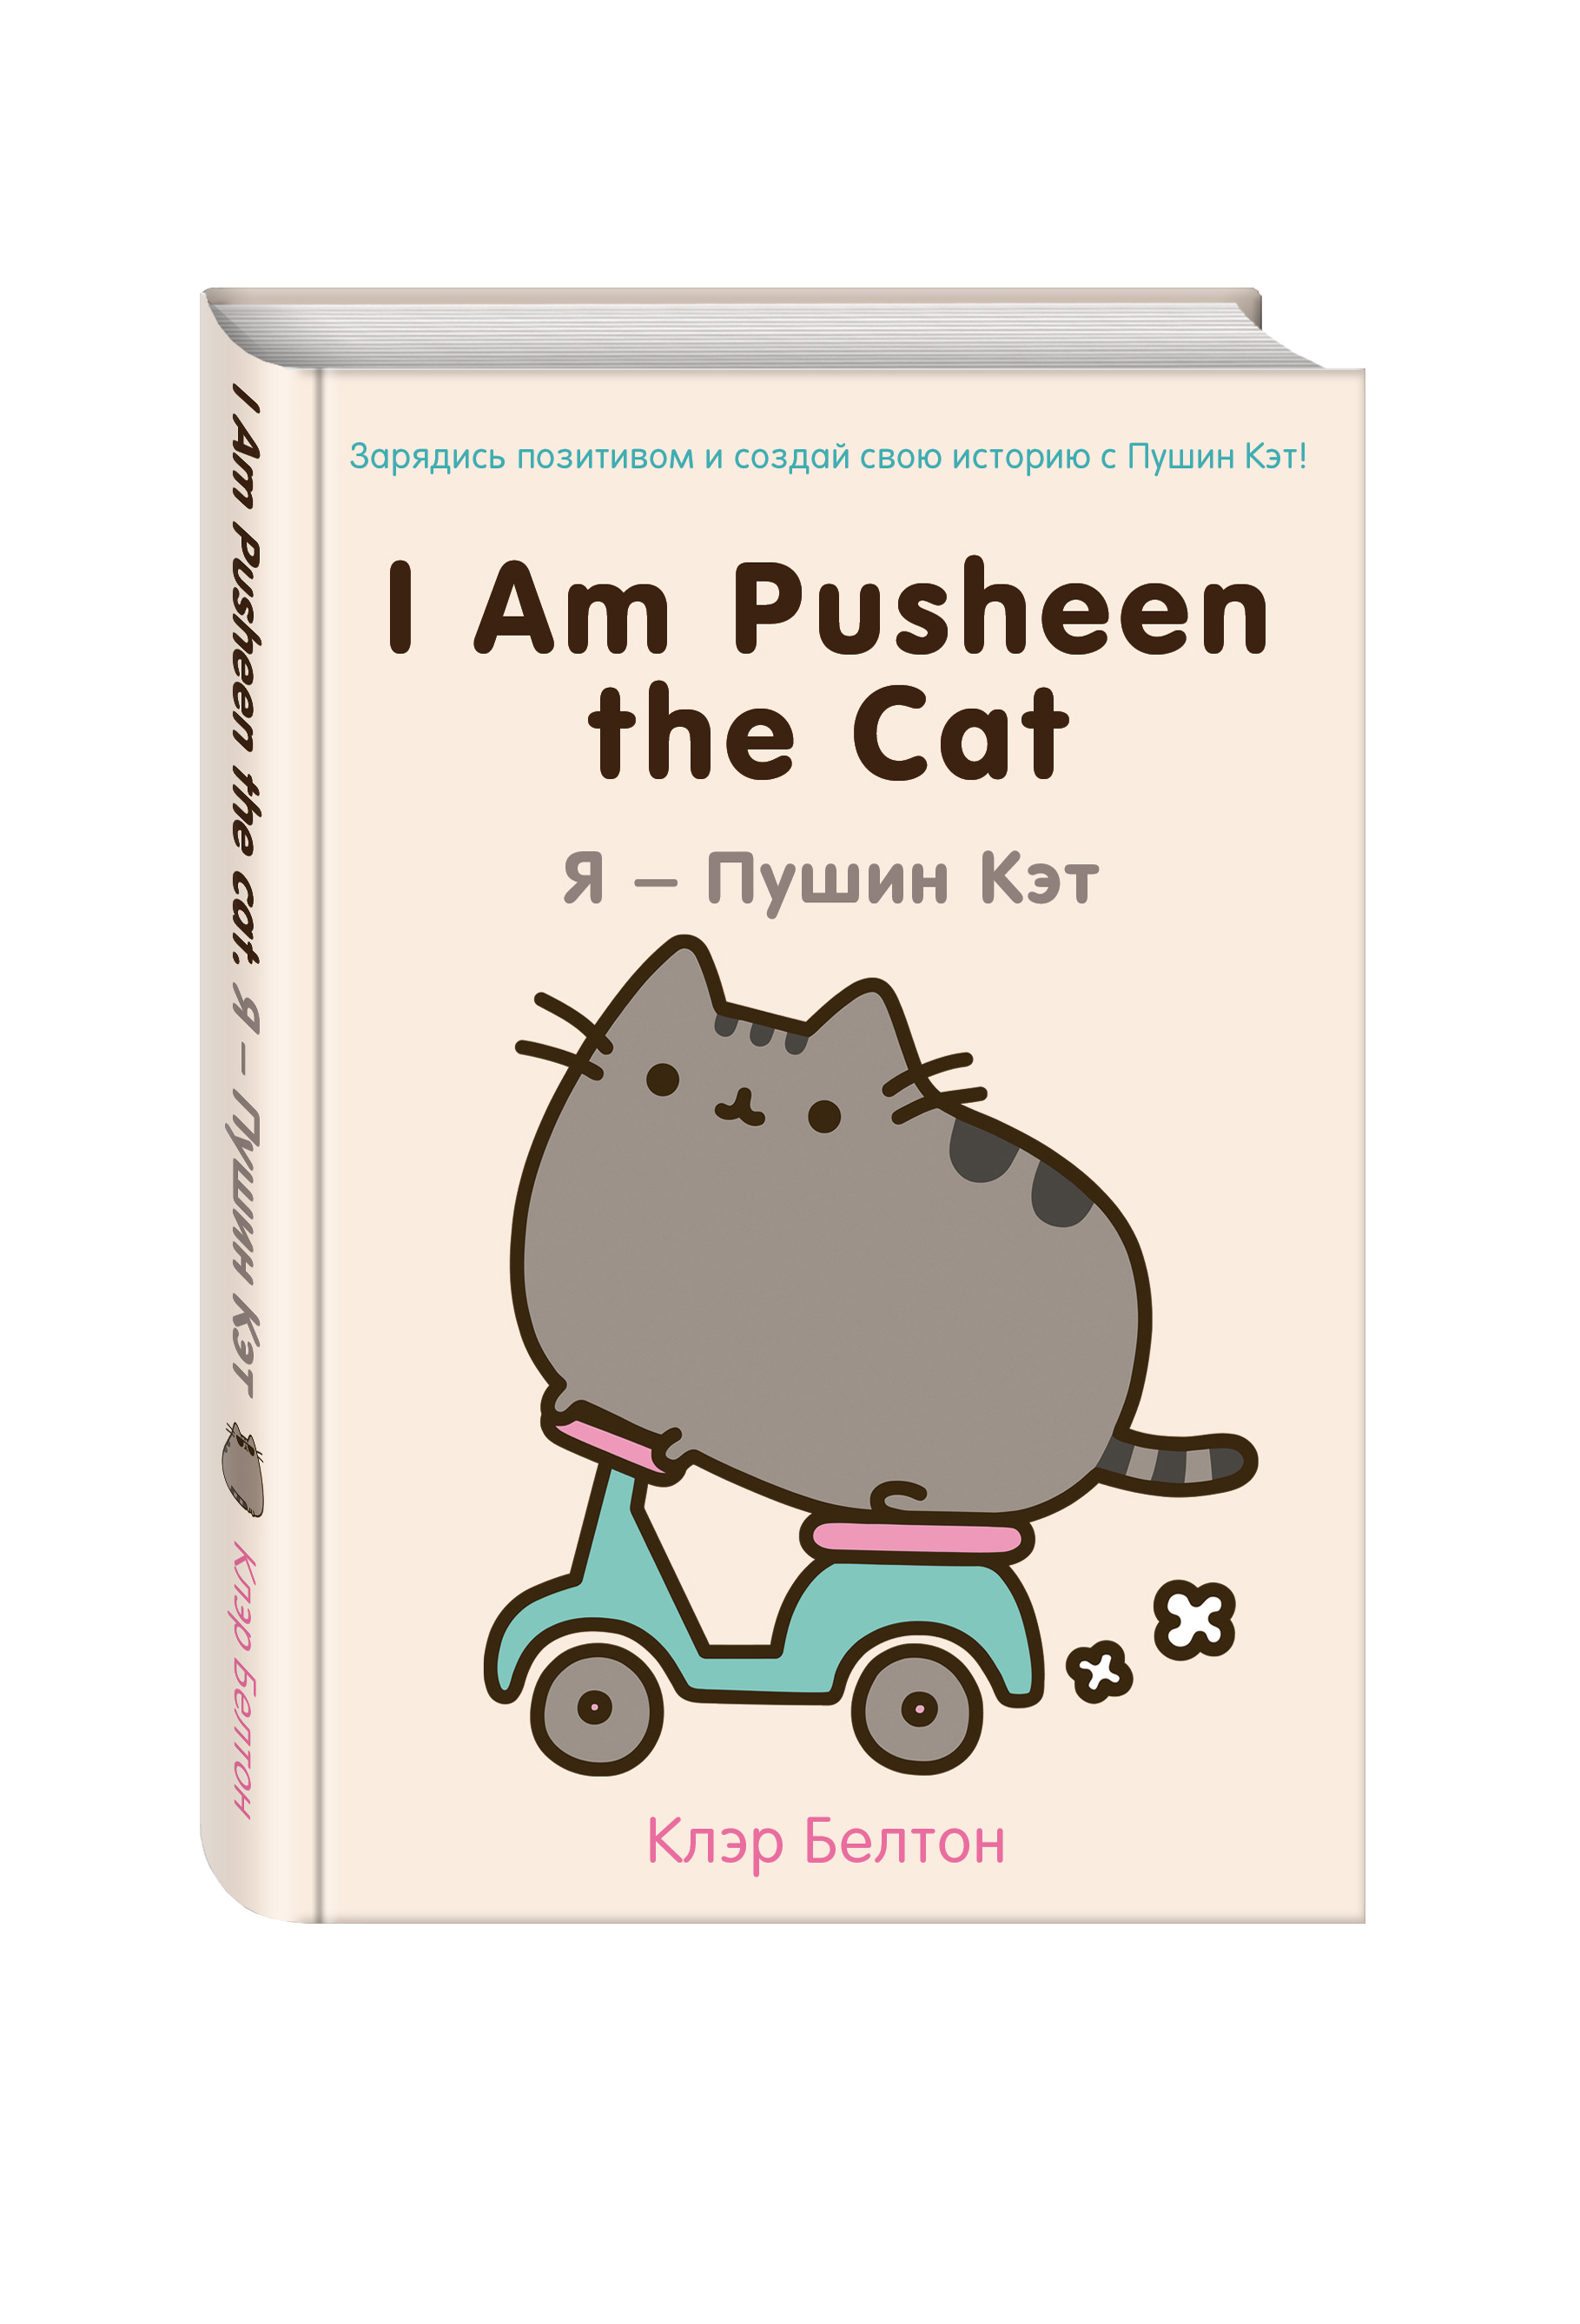 Белтон К. I Am Pusheen the Cat. Я - Пушин Кэт